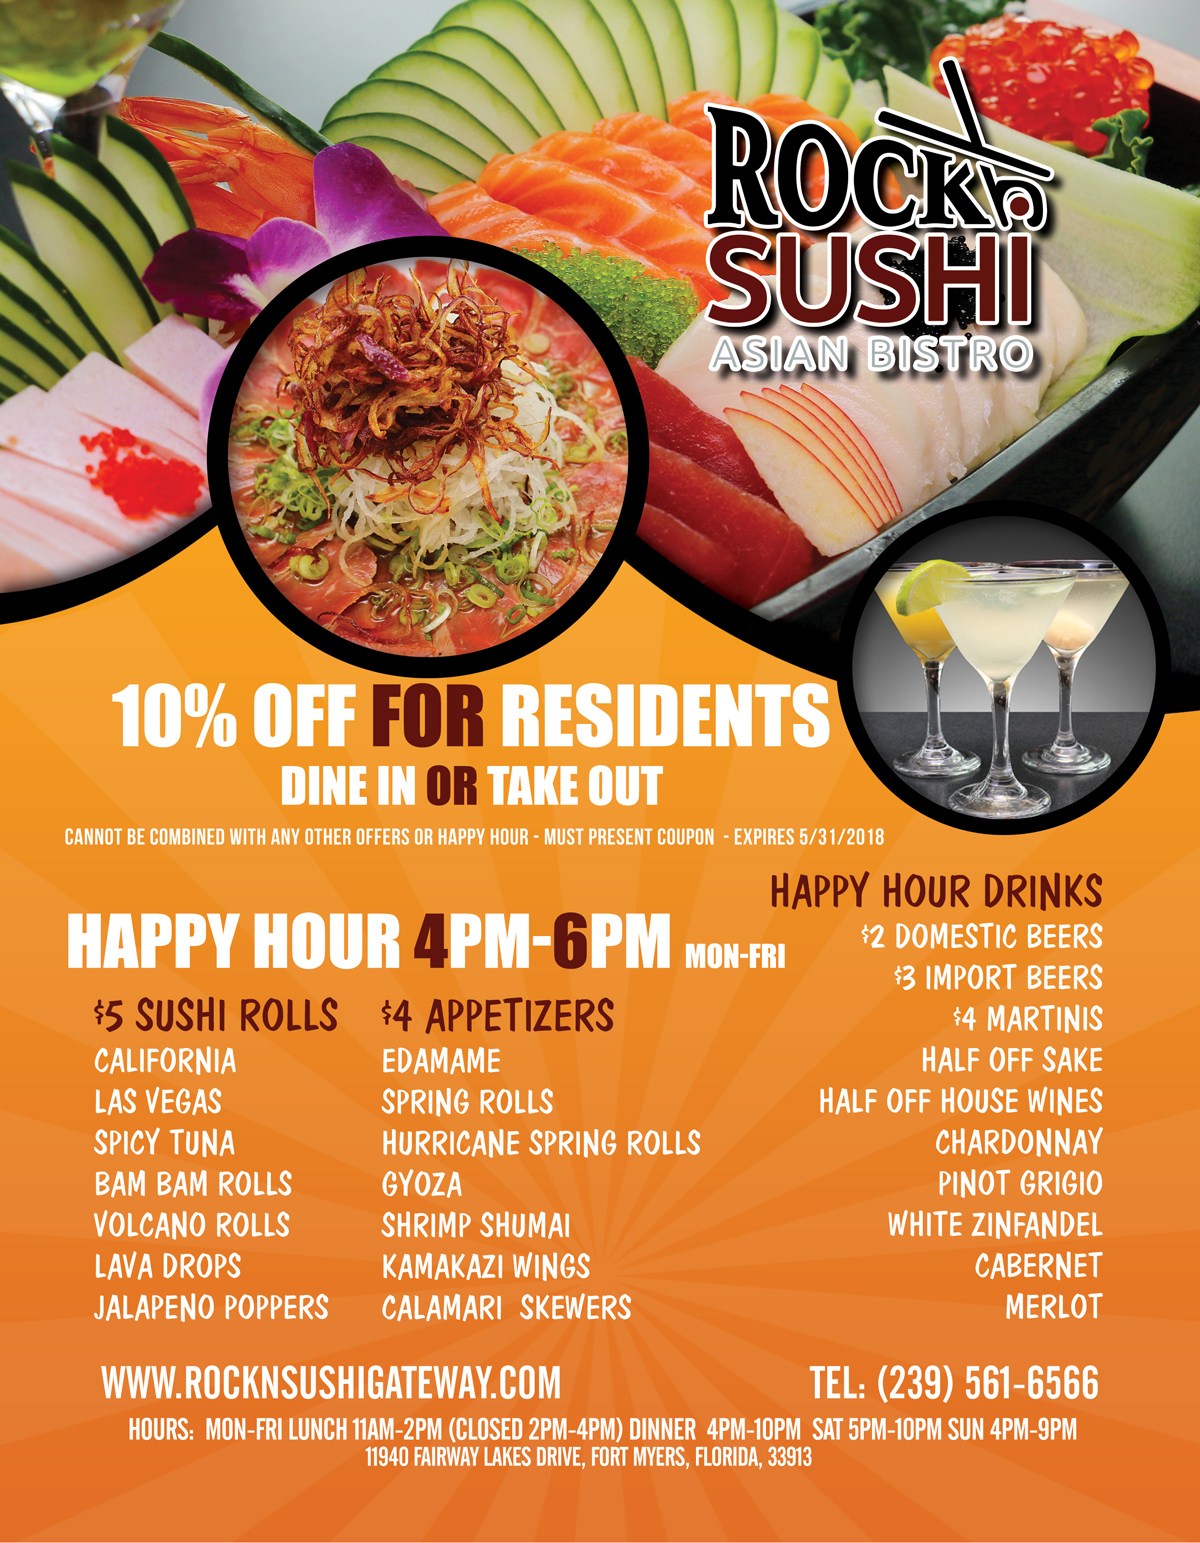 RKN-Sushi-Flyer-front-Feb-2018